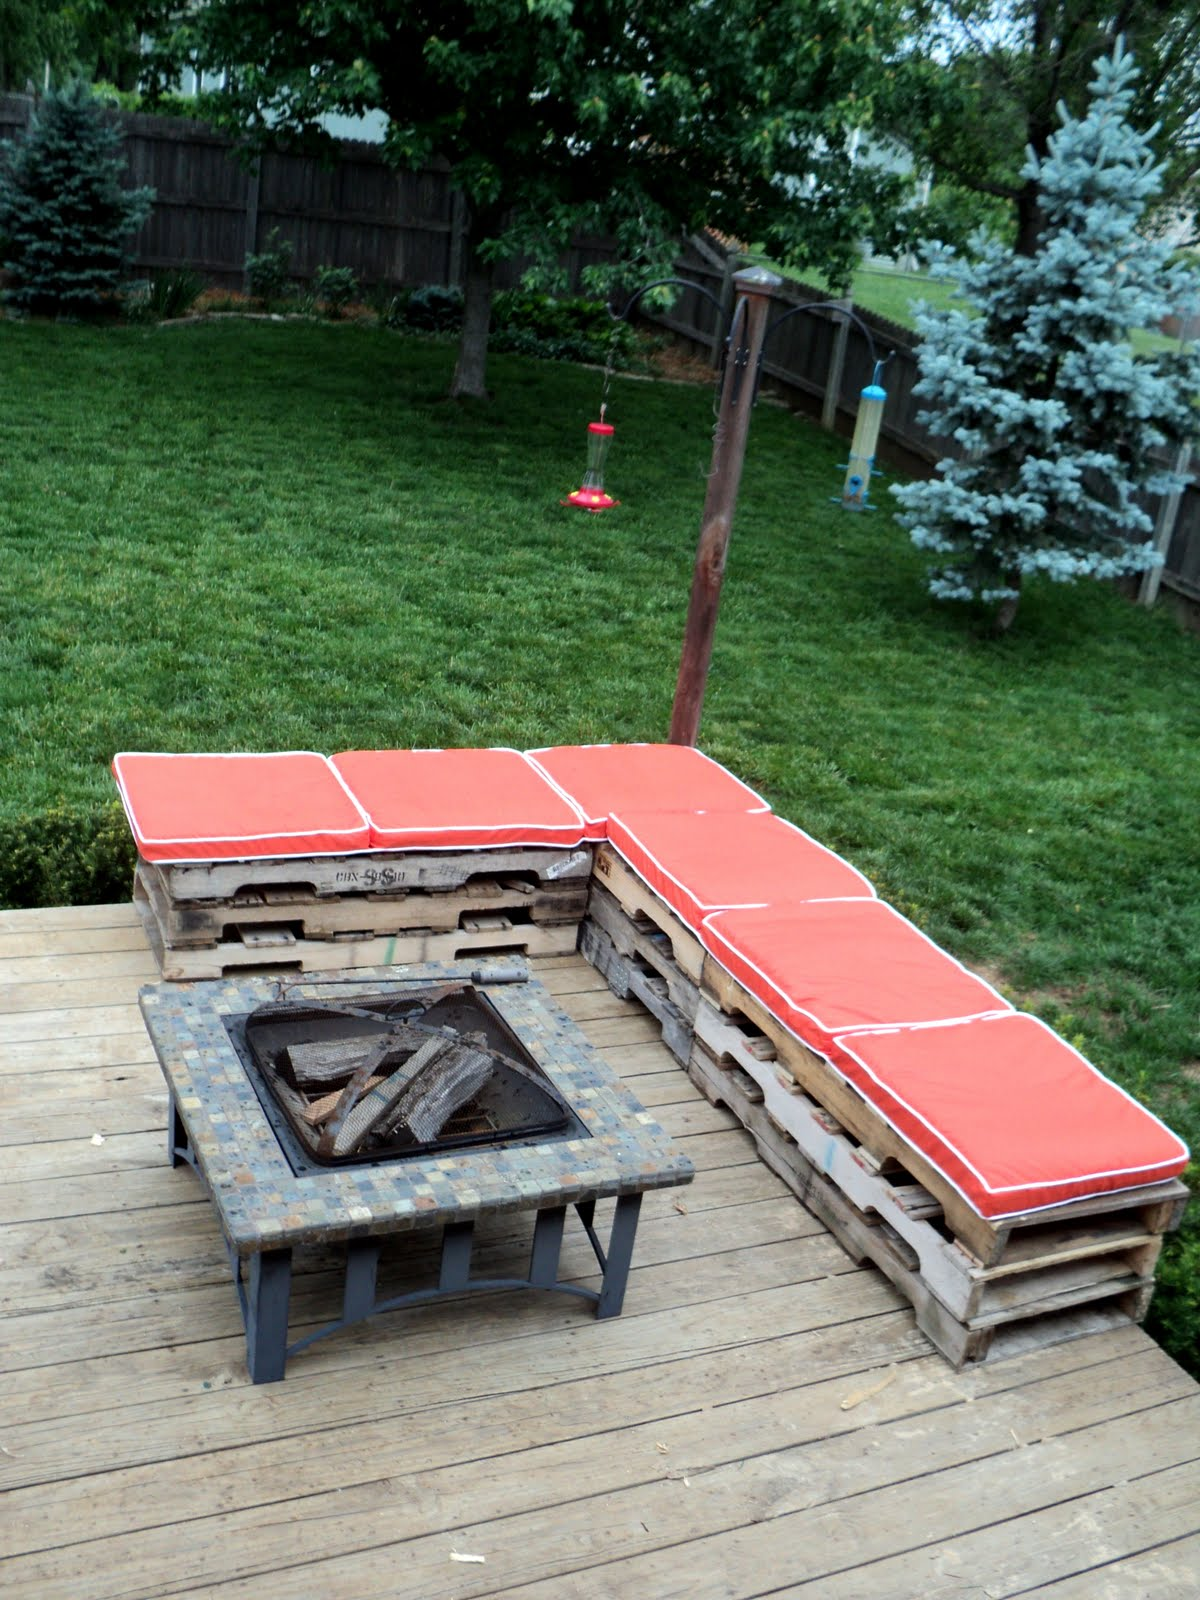 15 Of The Best Backyard DIY Projects | The Craftiest Couple on Diy Small Patio Ideas id=26818